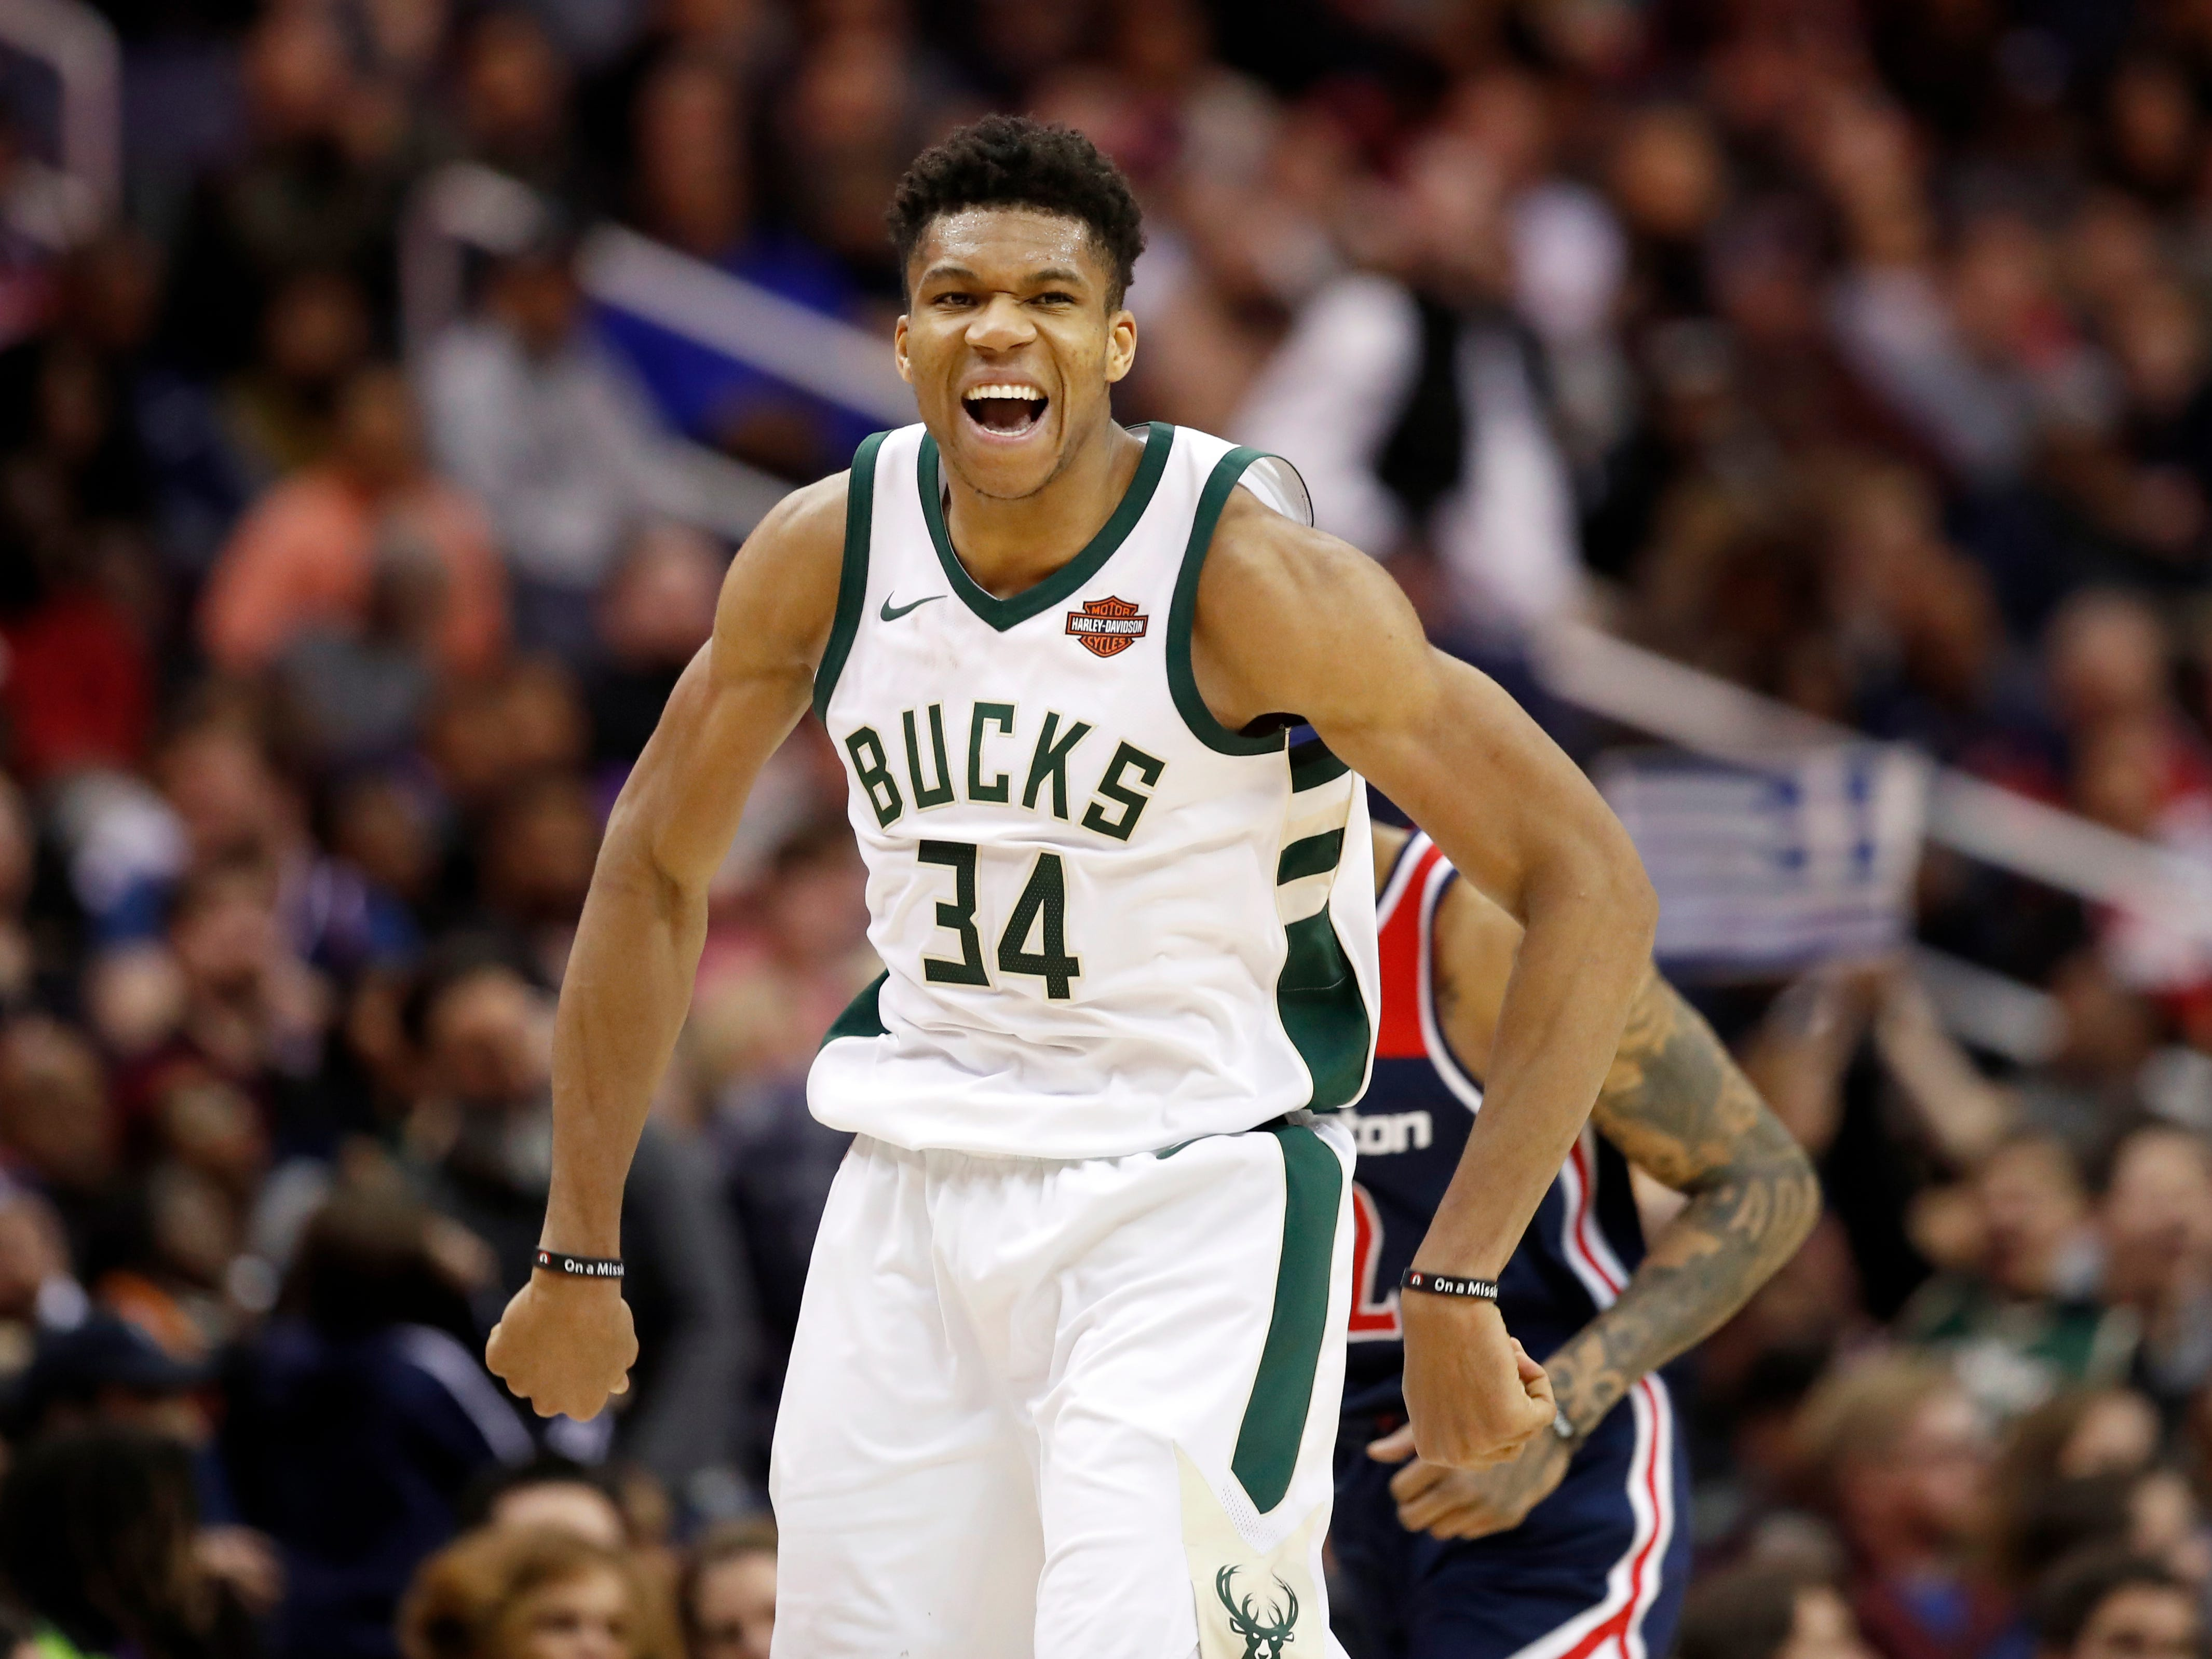 Antetokounmpo celebrates after making a shot during a 2018 game against Washington.